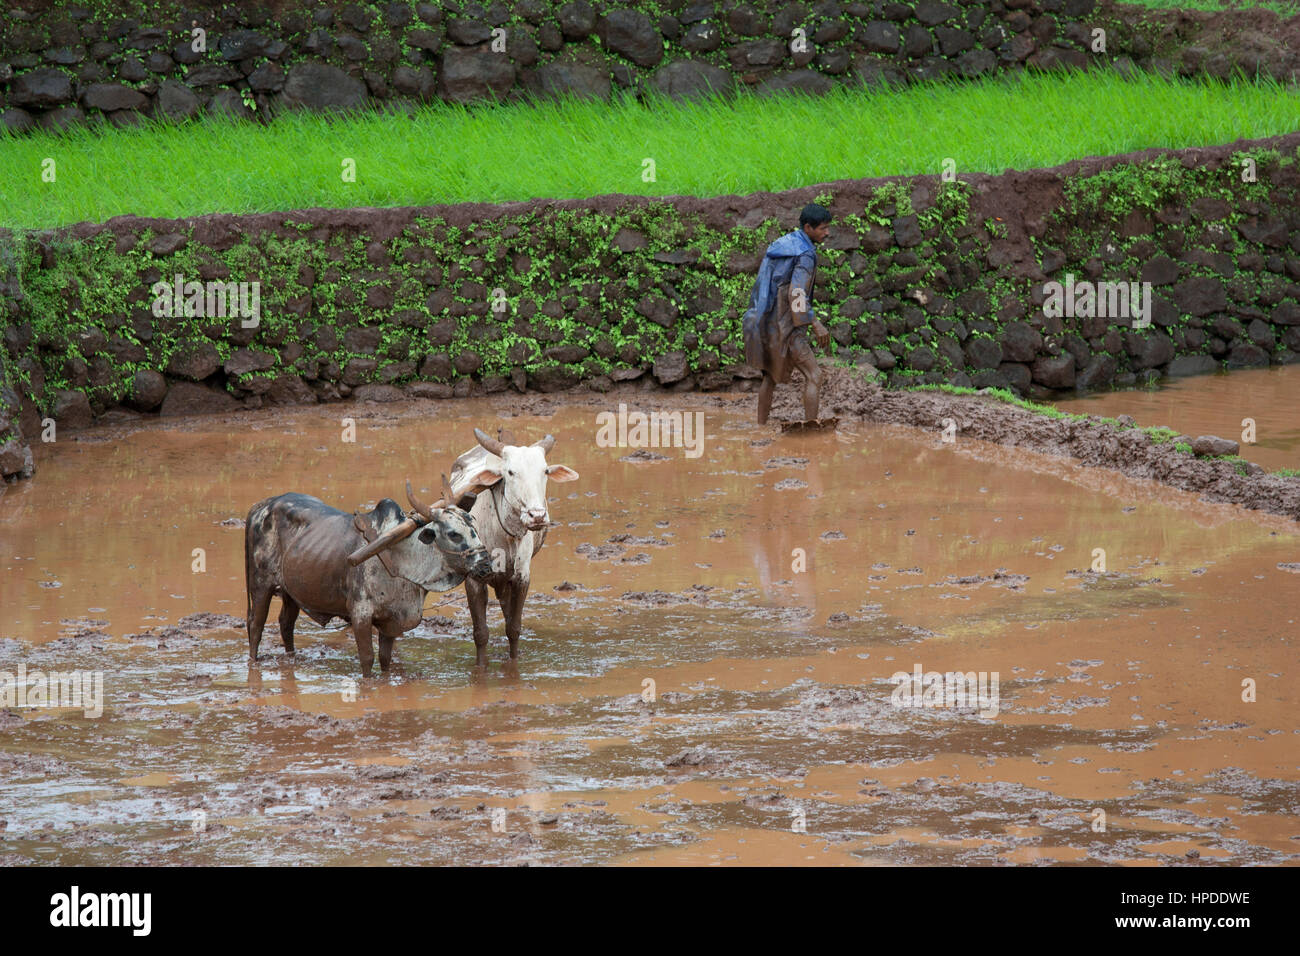 Man in blue raincoat busy in land preparation for transplanting of rice seedlings - Stock Image